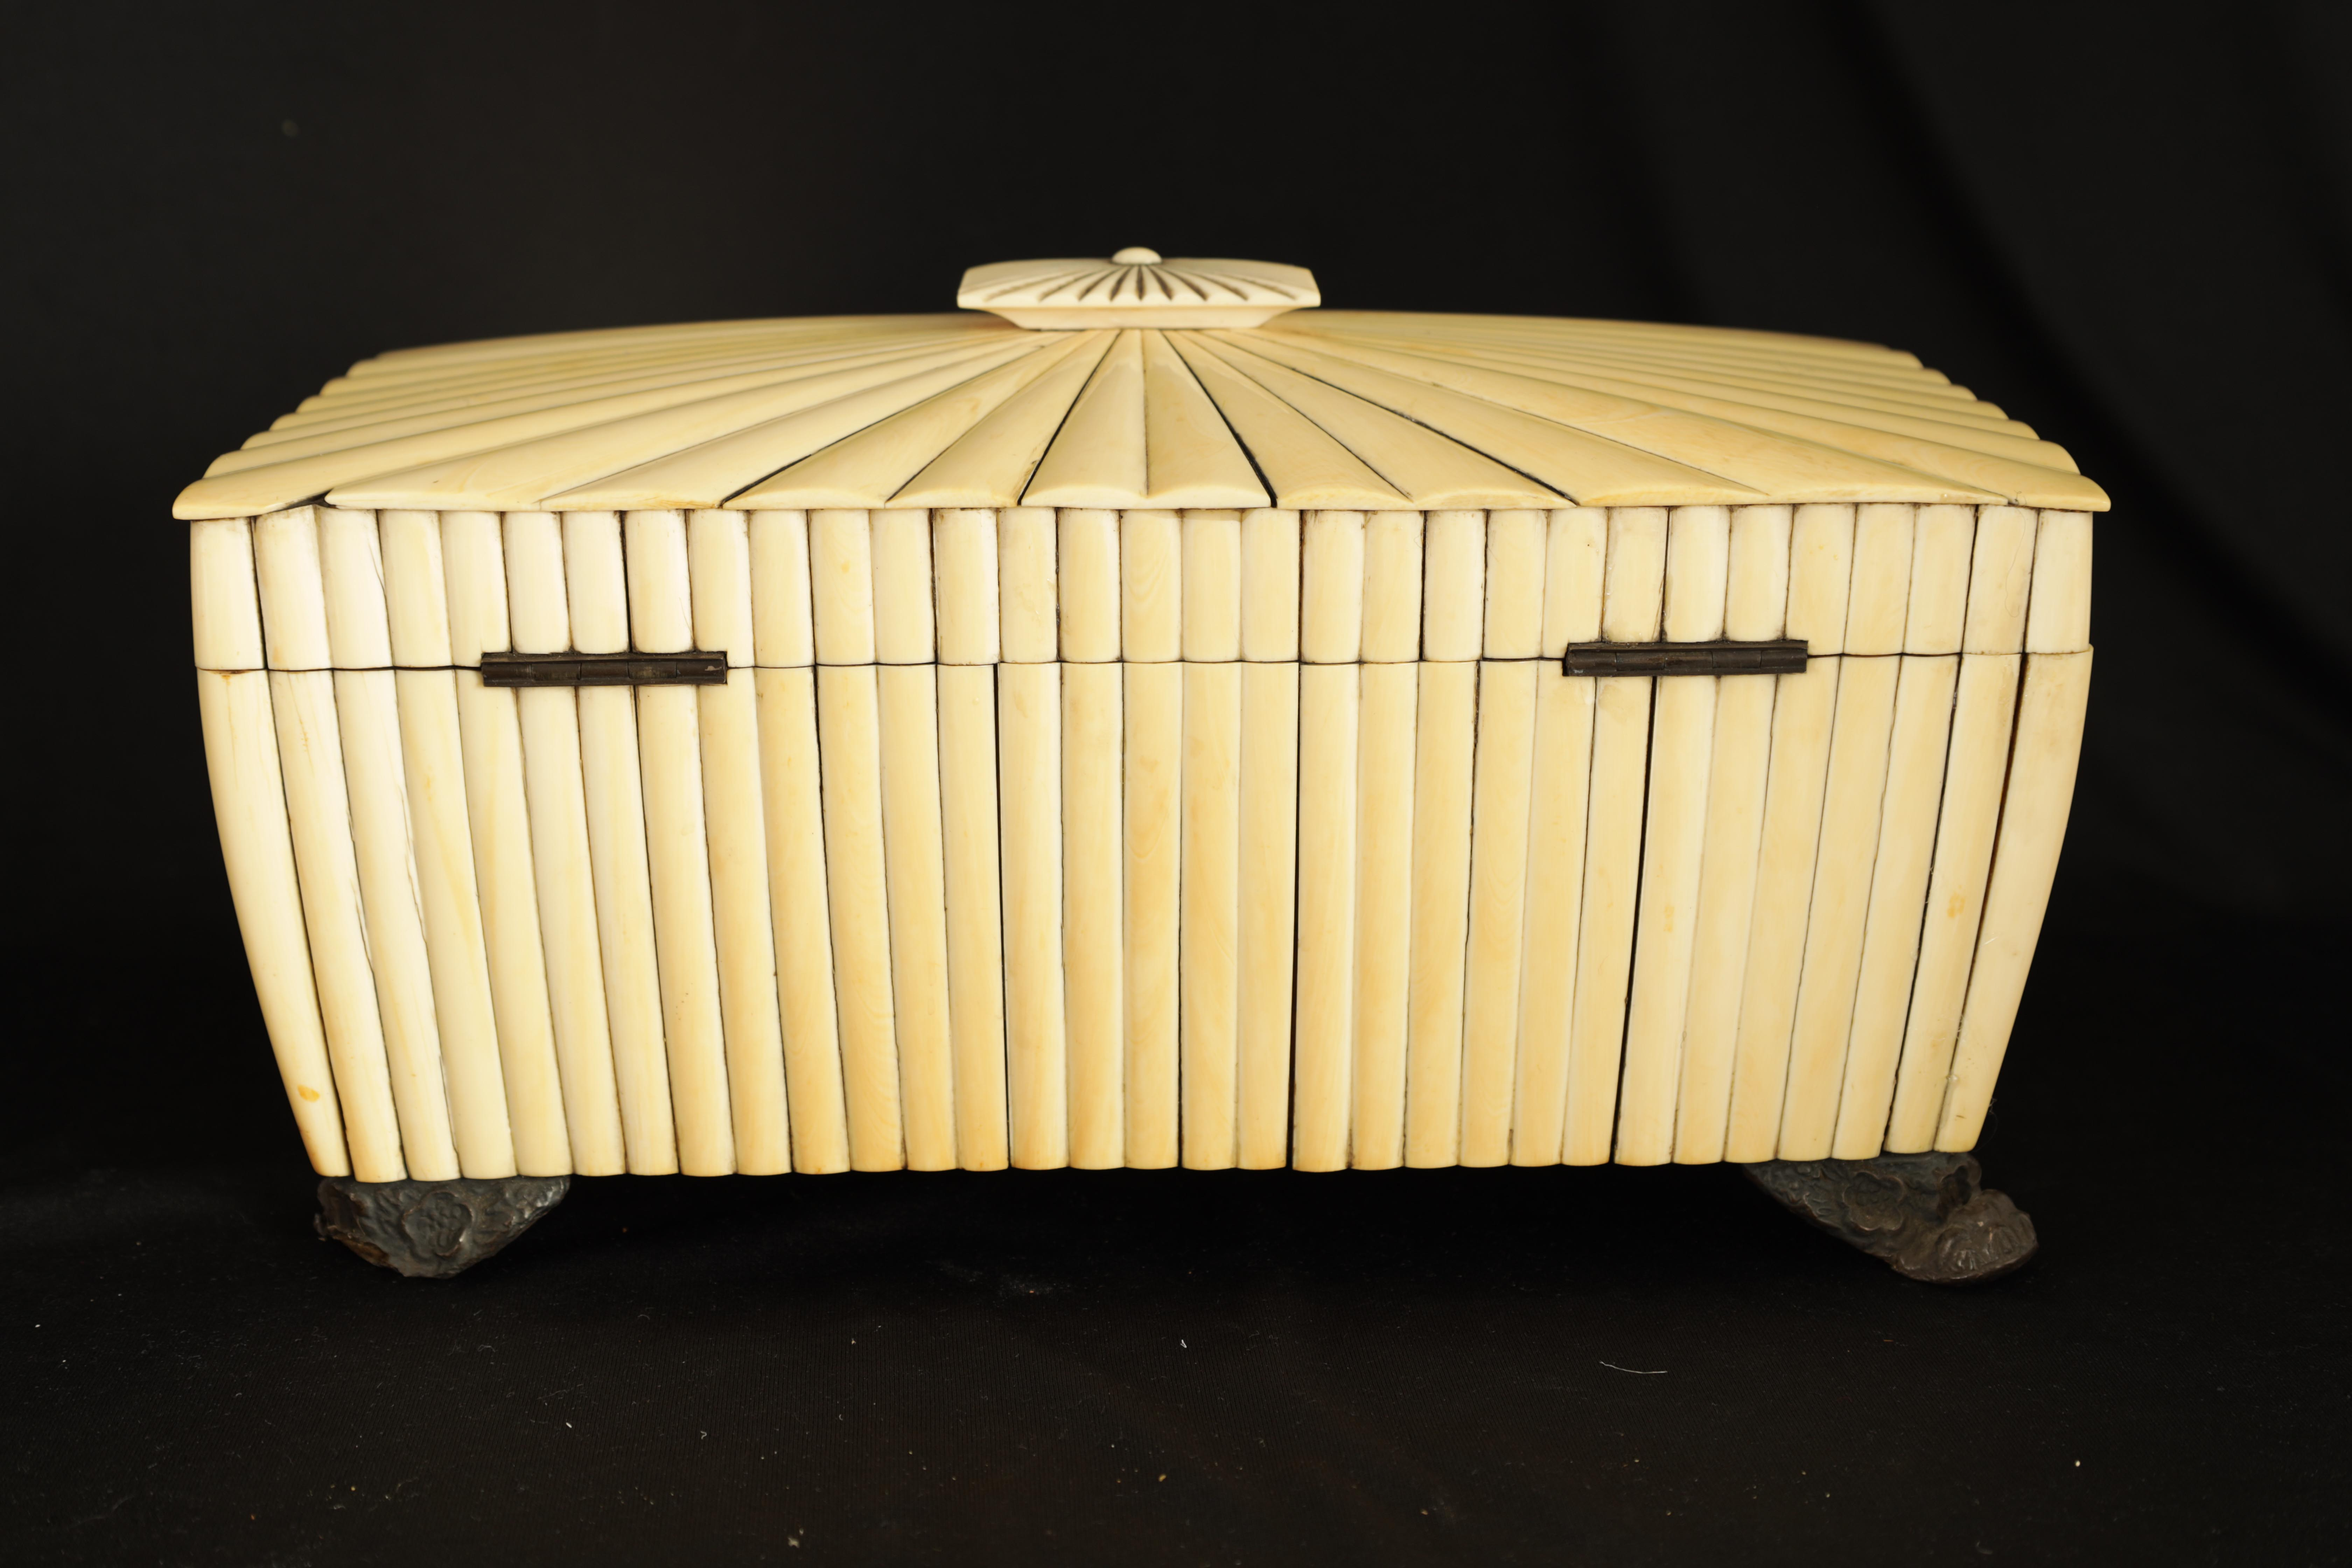 A REGENCY ANGLO-INDIAN IVORY AND SANDALWOOD VIZAGAPATAM TEA CADDY of sarcophagus form with gadroon - Image 10 of 12